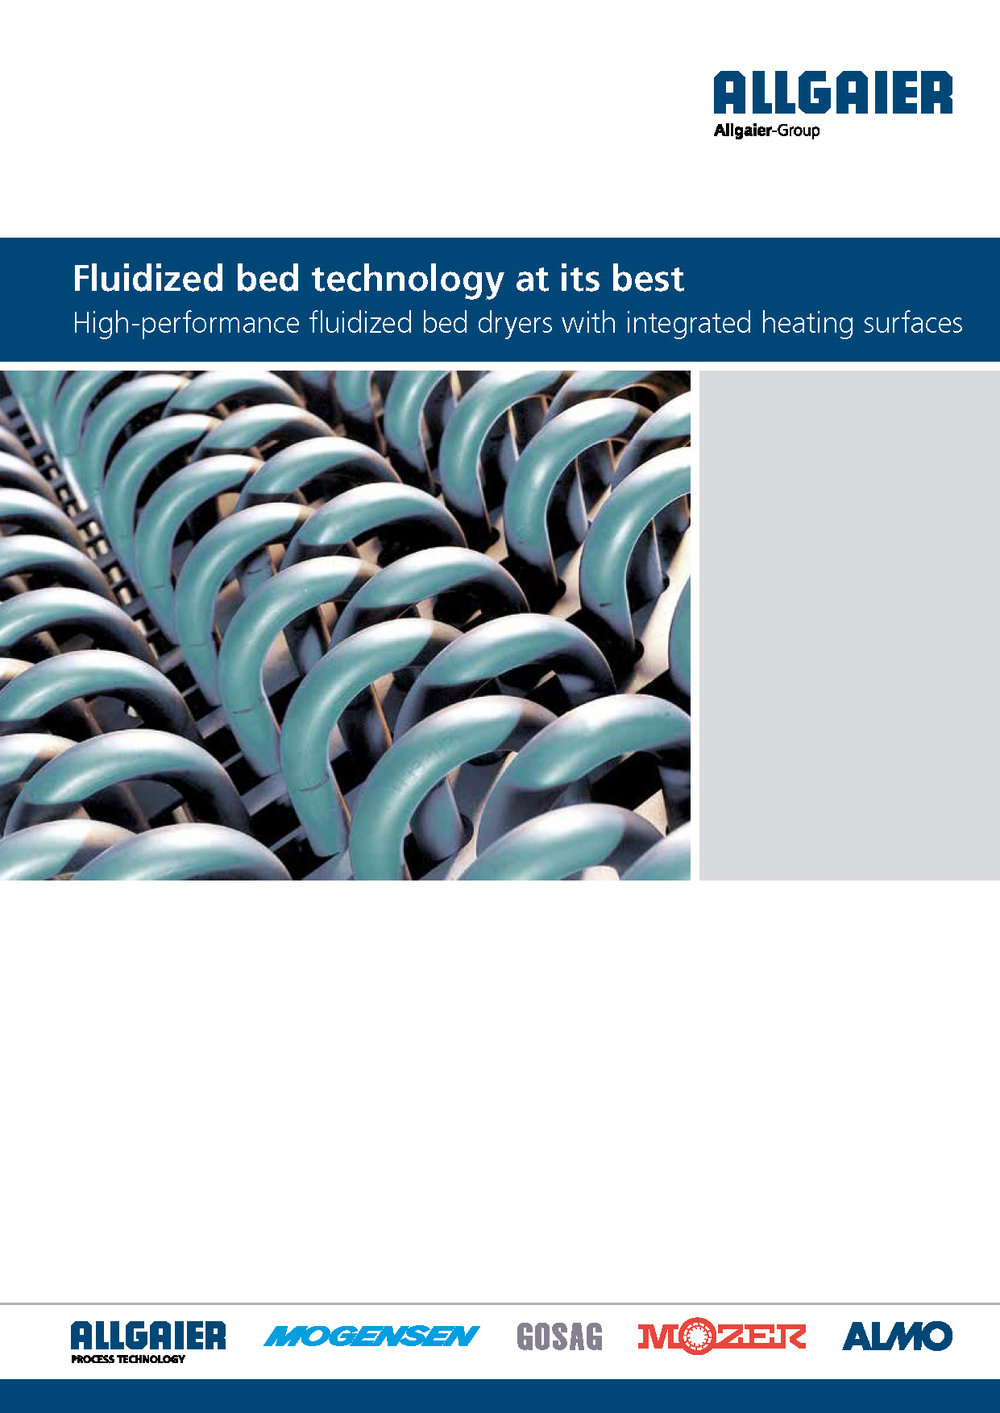 Fluidized bed technology at its best